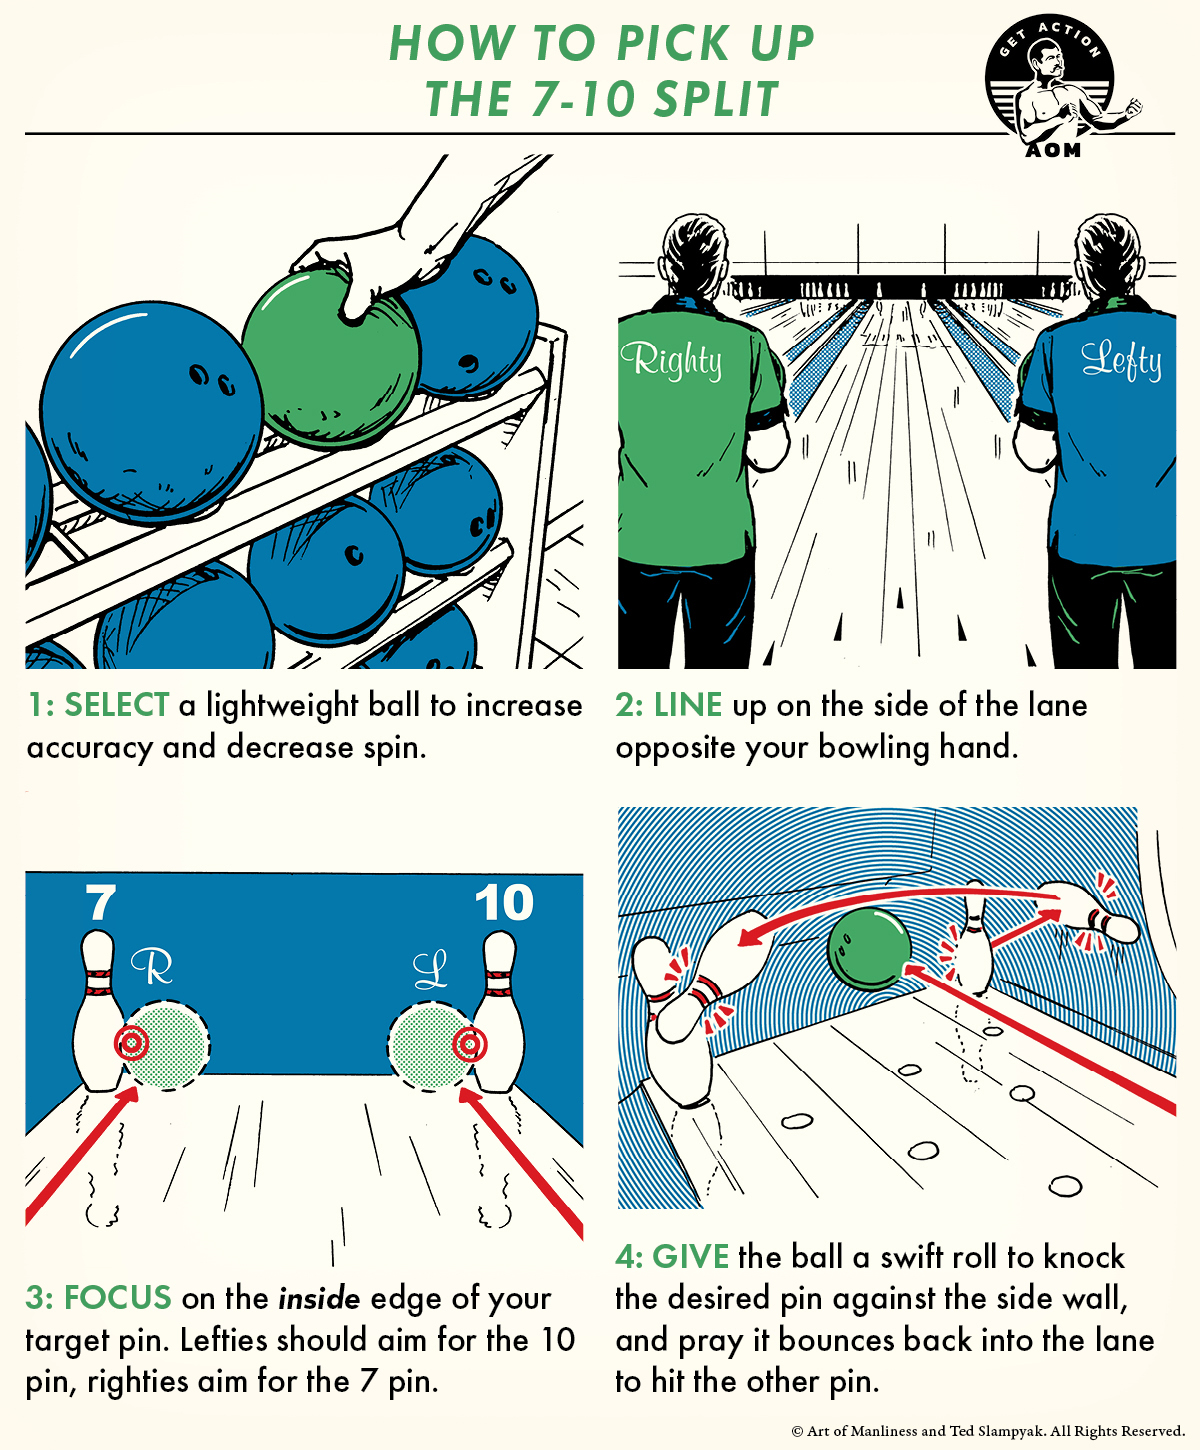 Four steps displayed to pick up spare on 7-10 split in bowling.